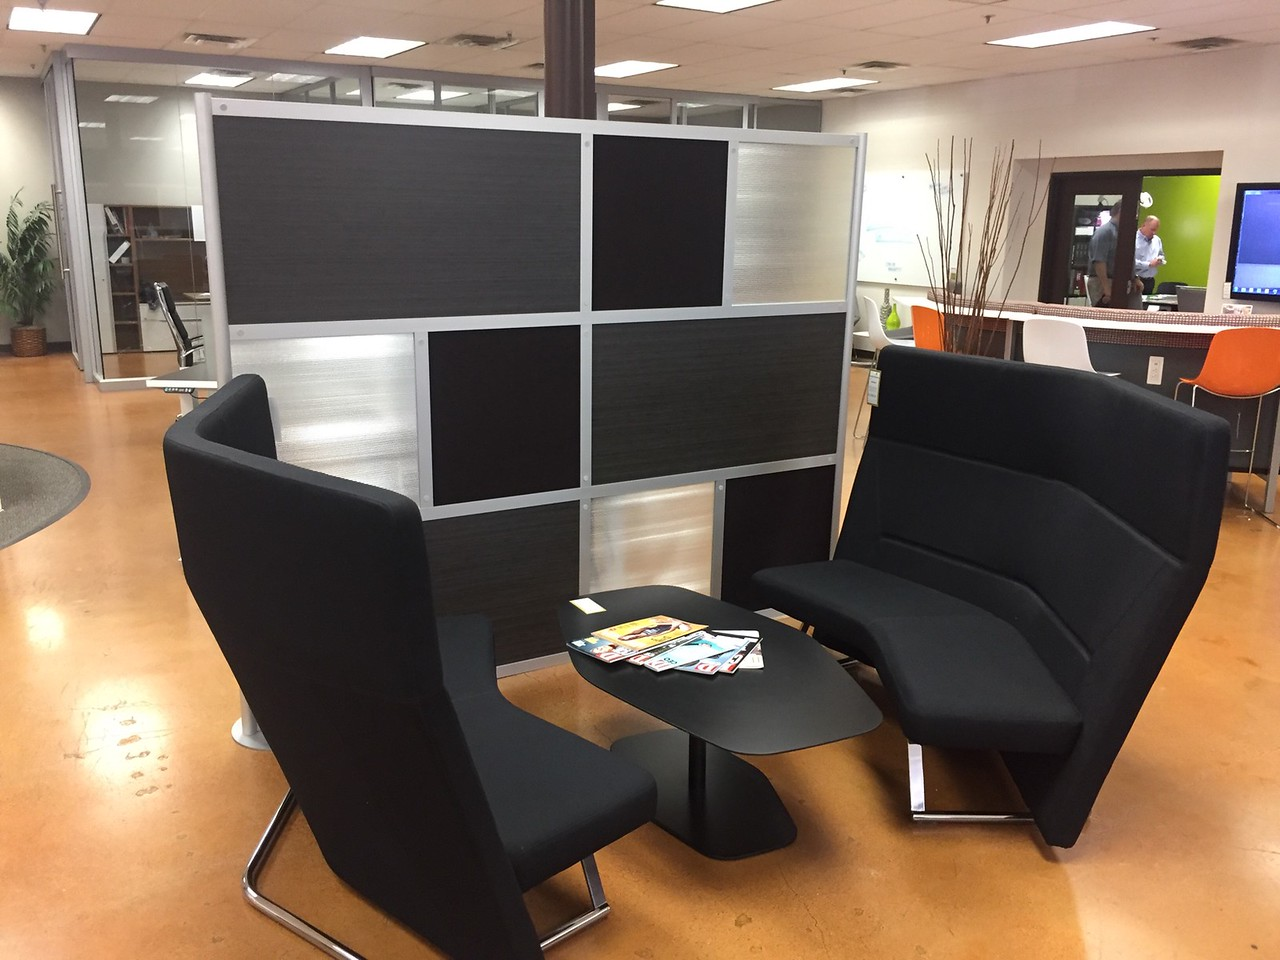 furniture-stores-in-addison-their-show-room-x2.jpg